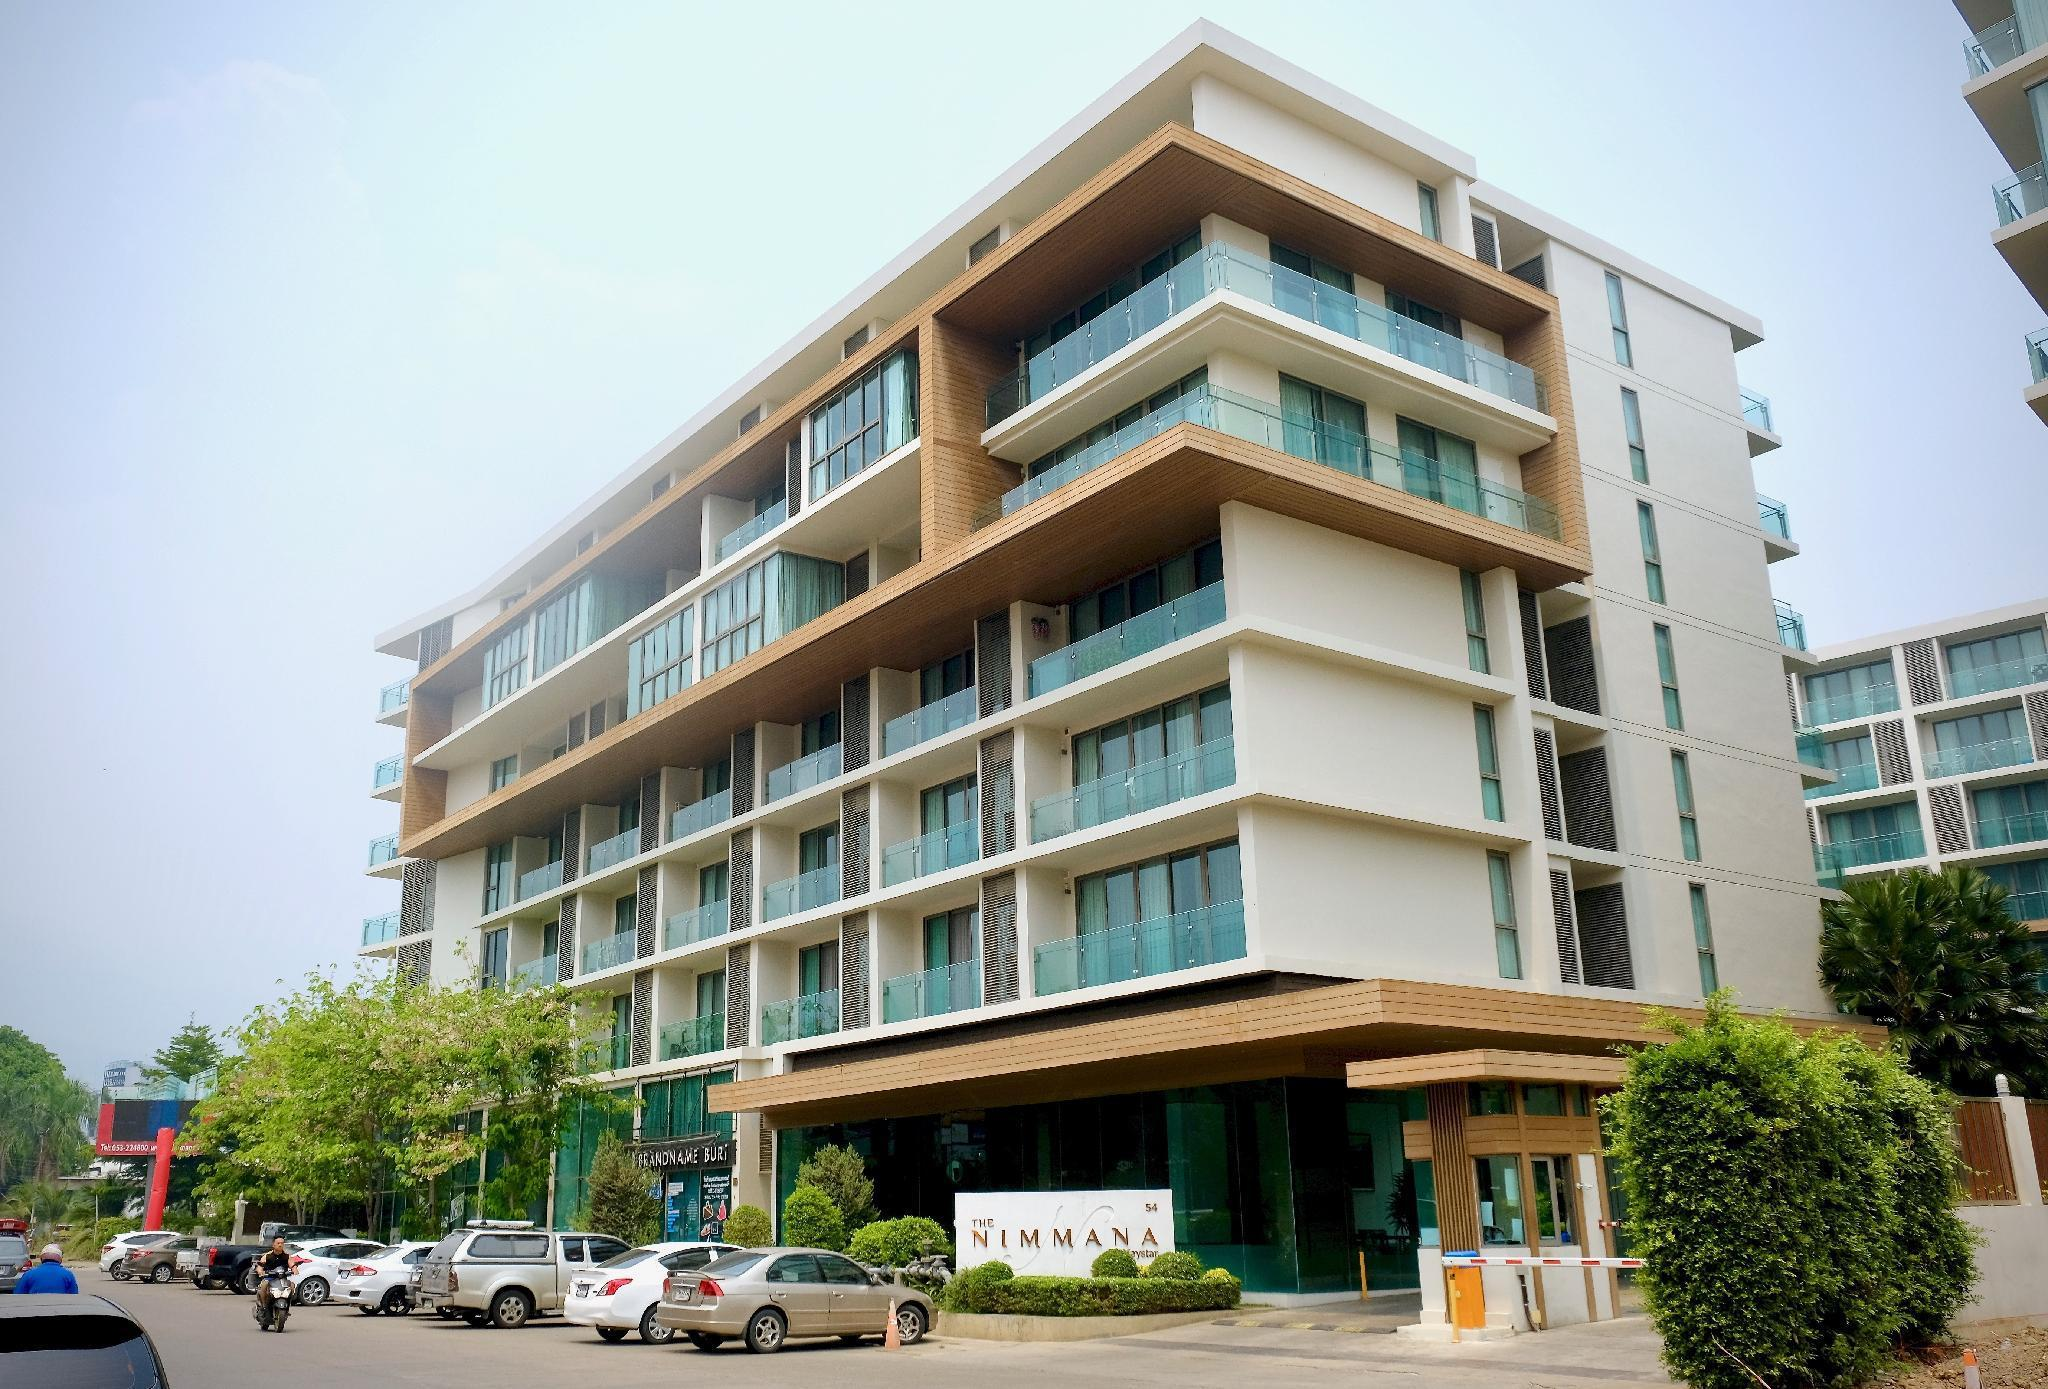 New Modern condo in Nimman Area with pool and gym New Modern condo in Nimman Area with pool and gym